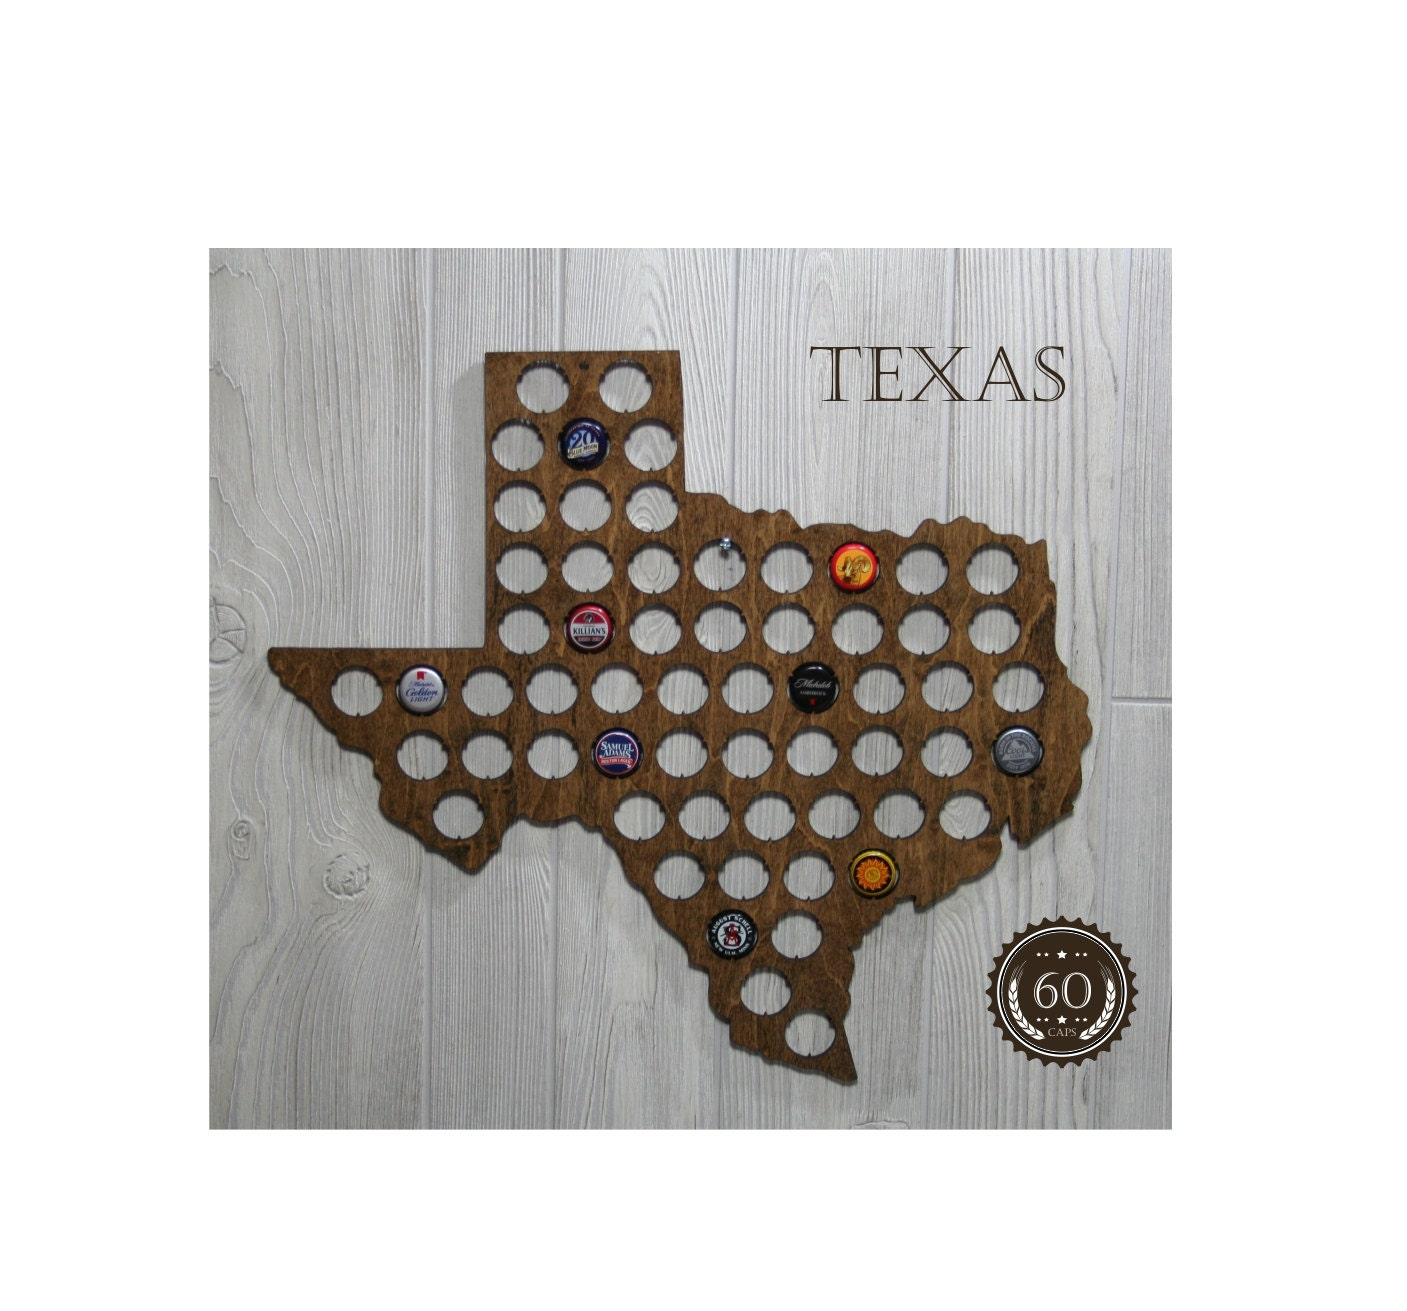 TEXAS Beer Bottle Cap Map Wall Decor 18 X 20 By